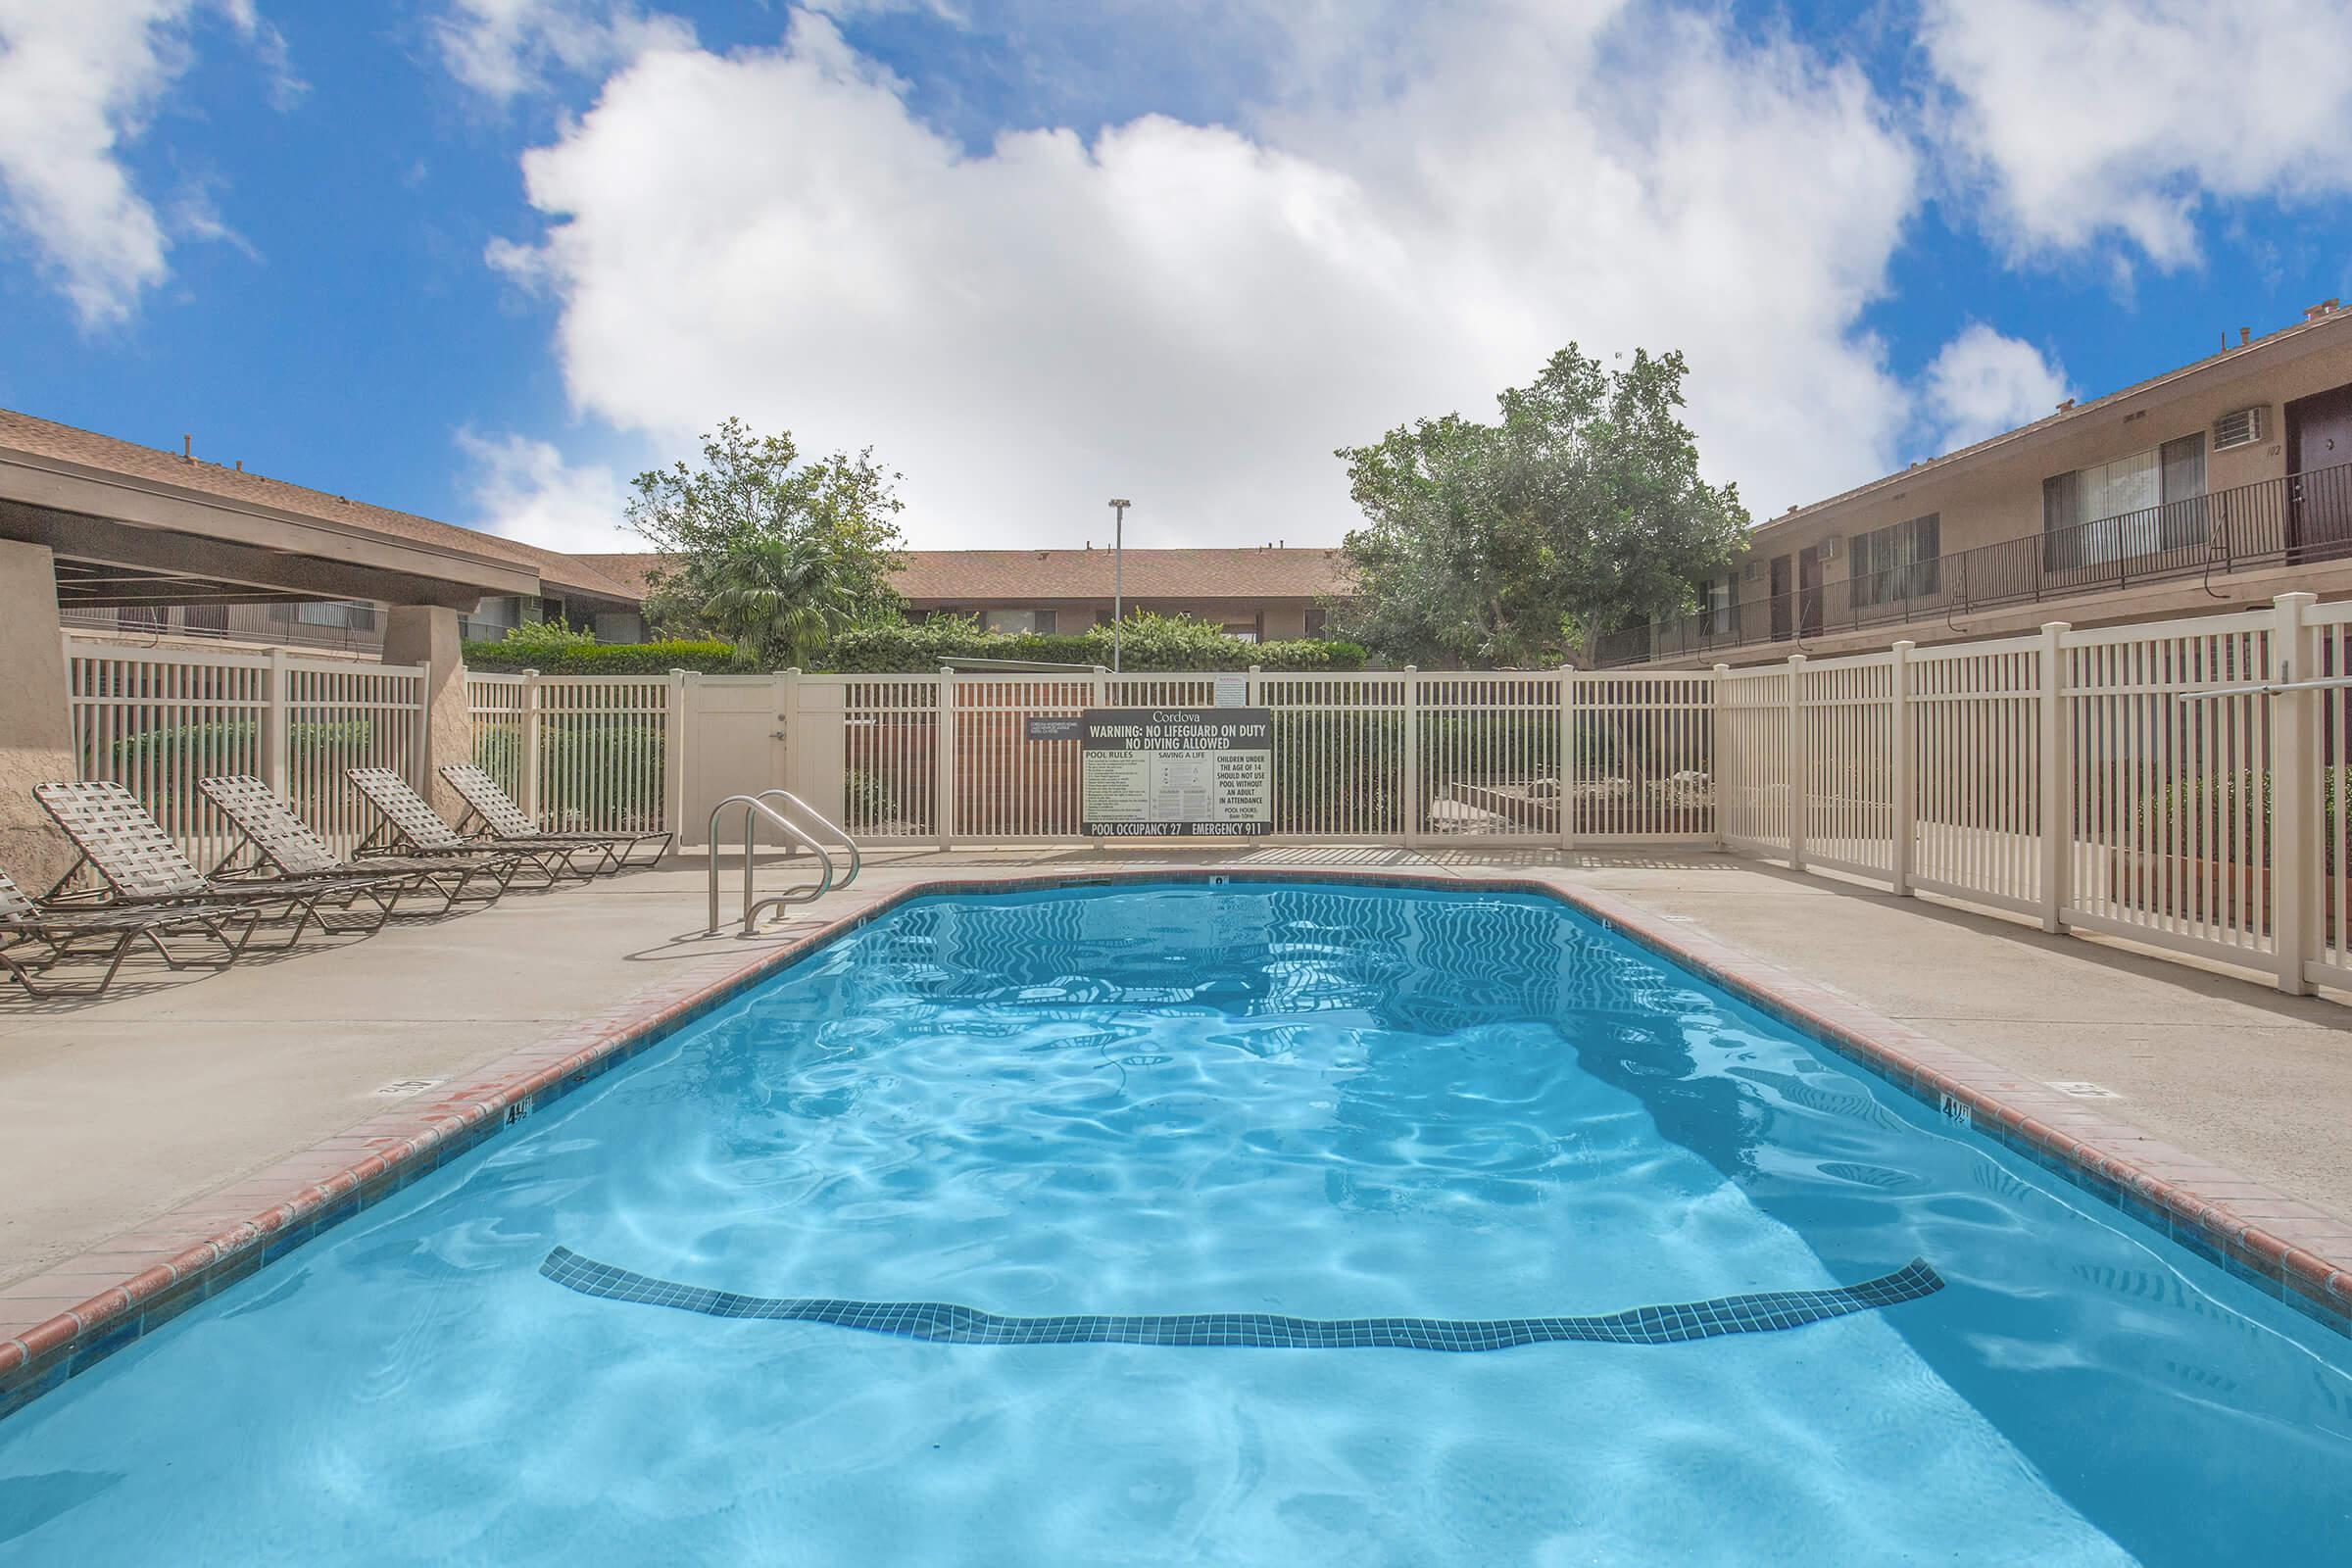 Castilian and Cordova Apartment Homes community pool with chairs